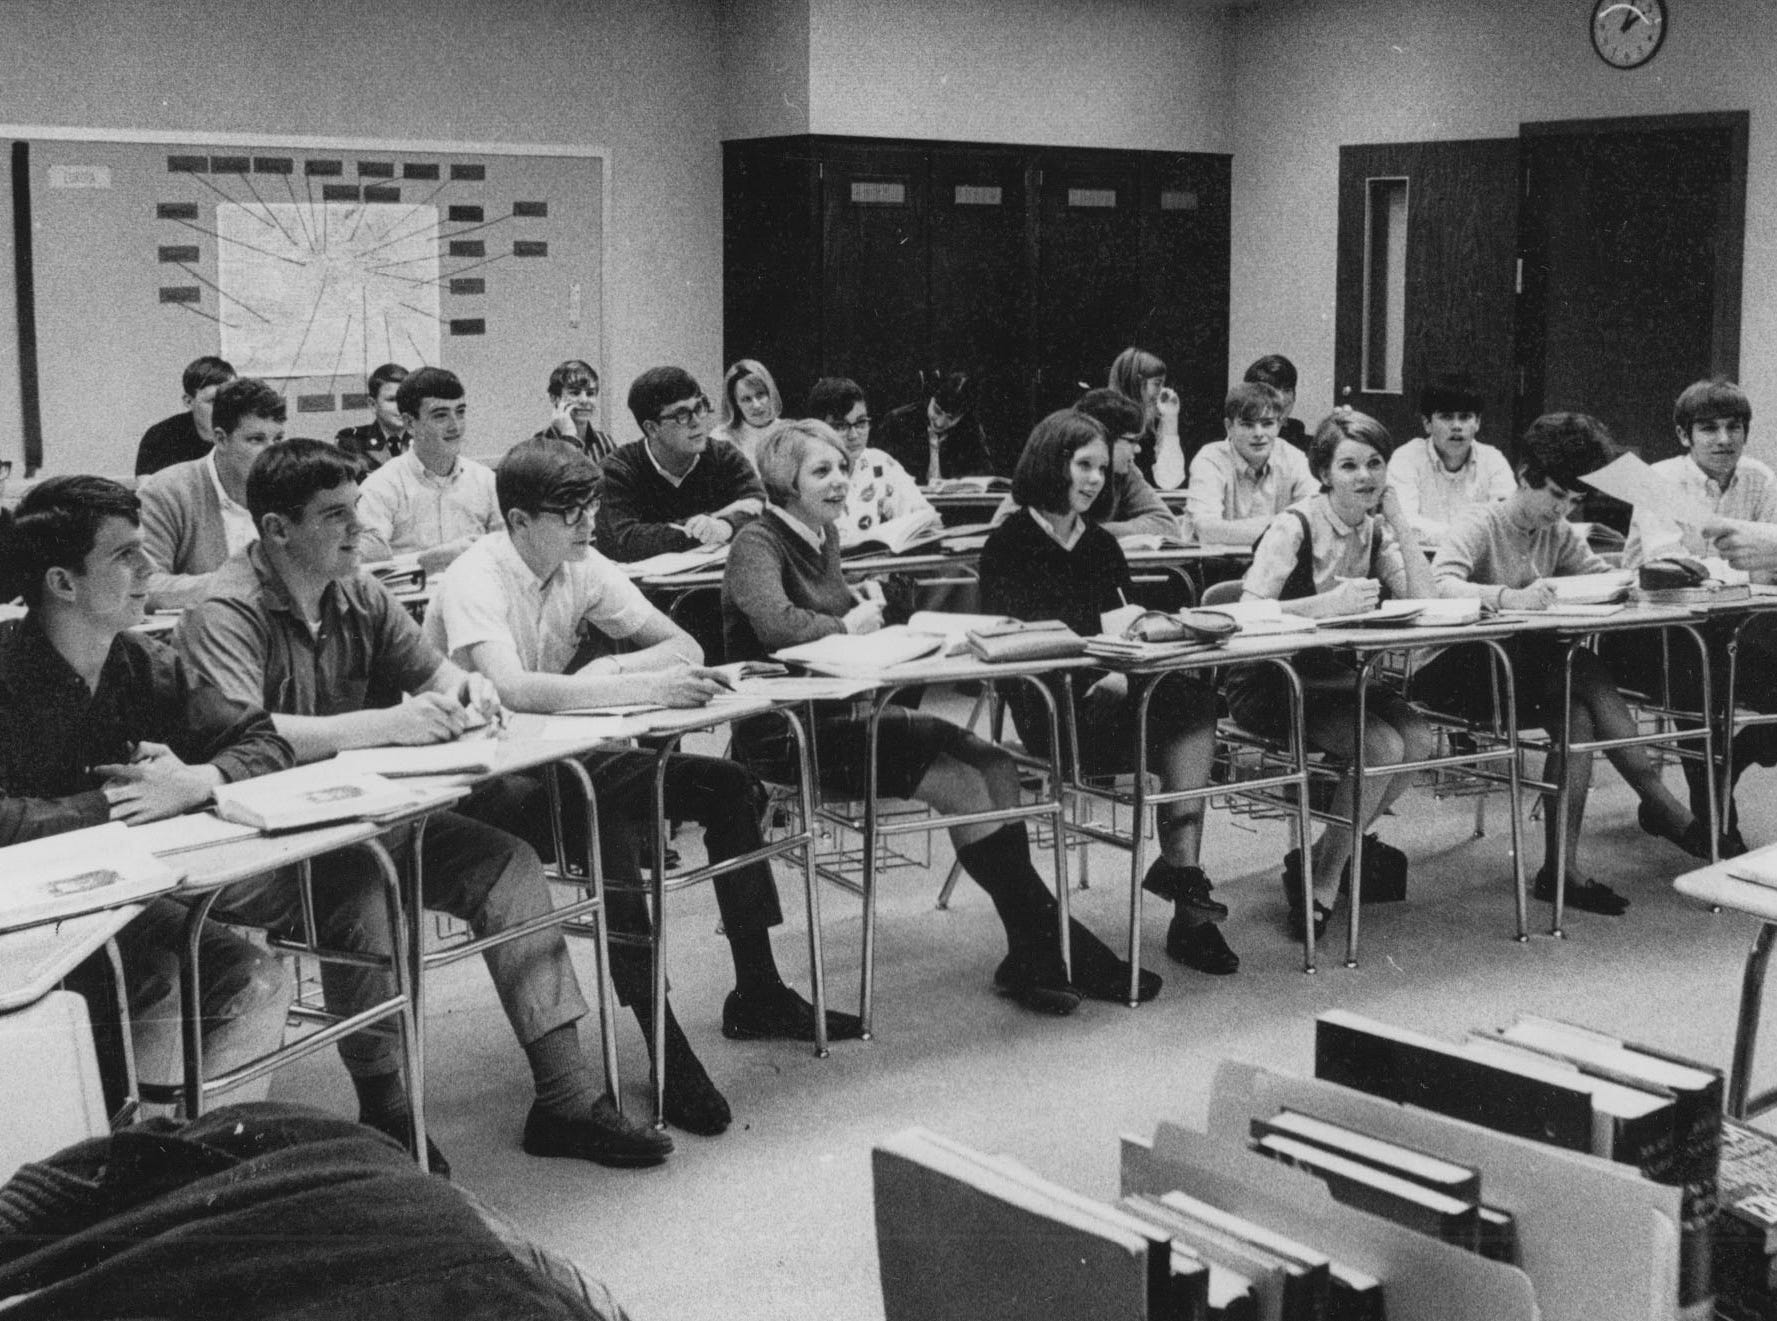 Laura Harvey lectures a class in German at Marshall High School in 1967. The $6.2 million school which opened in the spring of 1967 was named after John Marshall, second chief justice of the U.S. Supreme Court. The school's enrollment that year was 1,200 but the school had the capacity for 2,400 students.